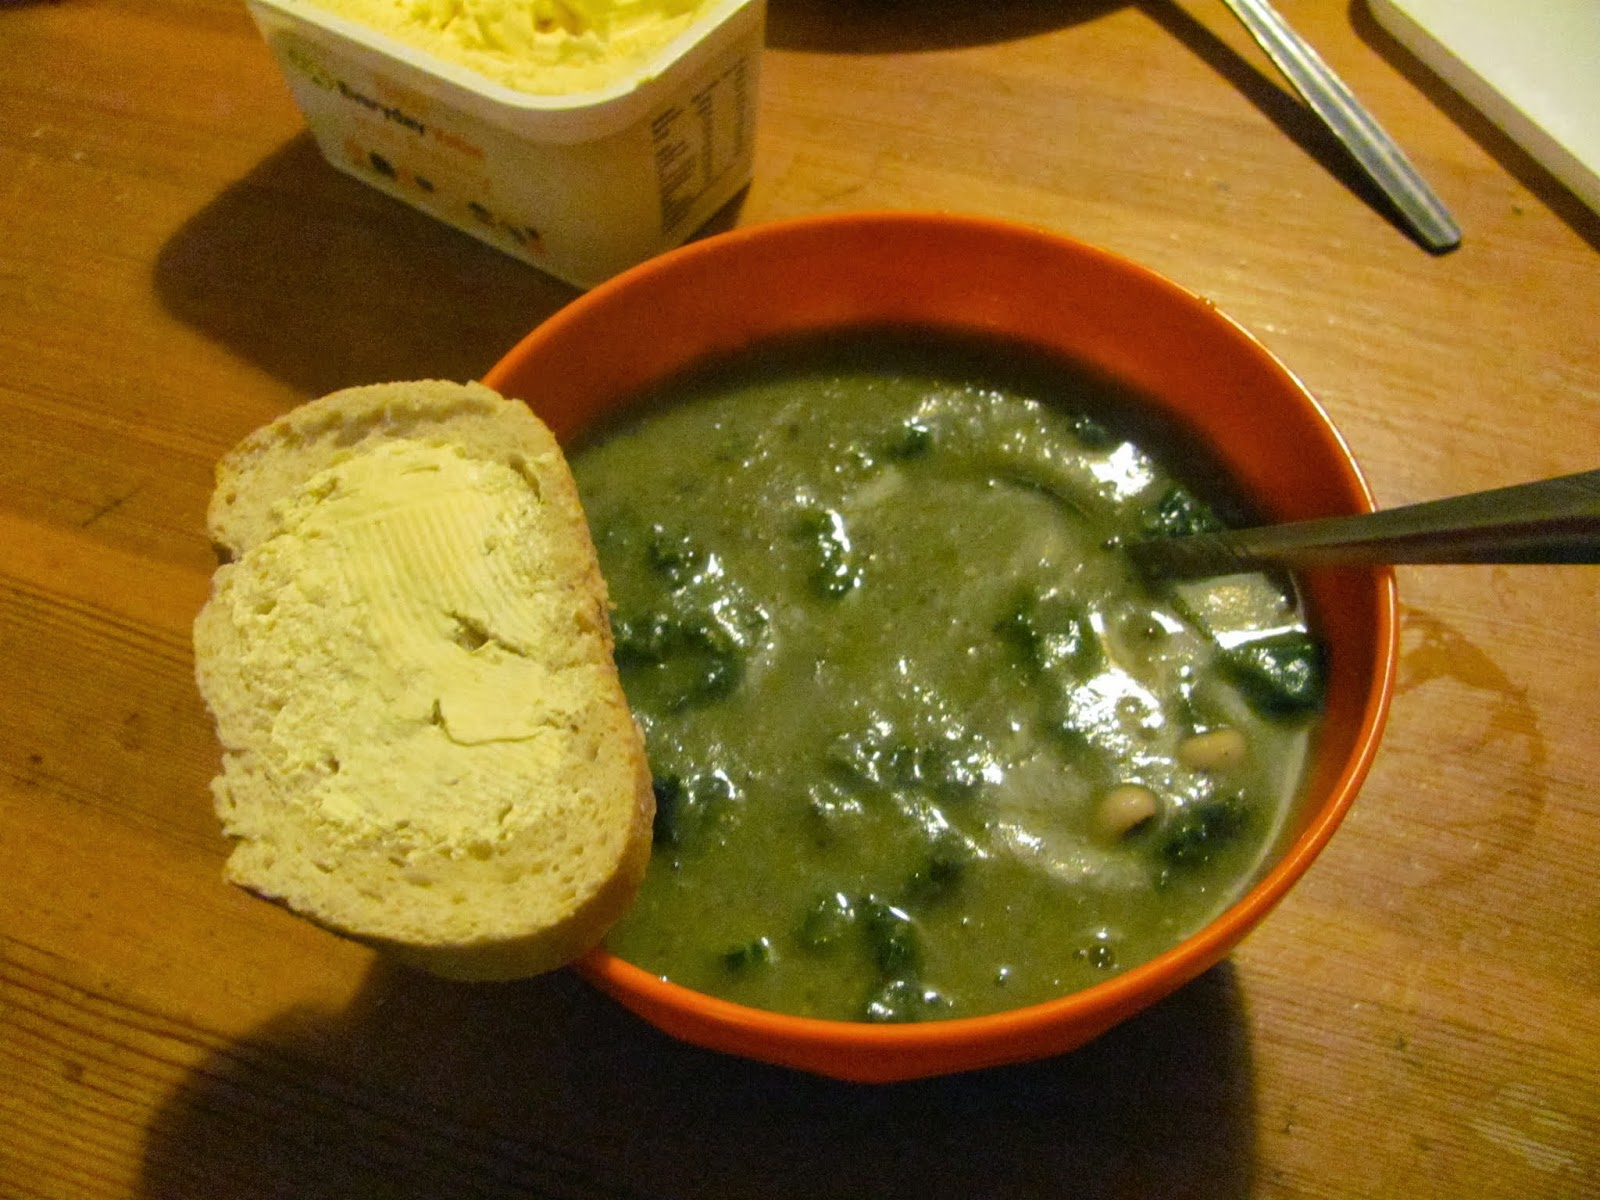 Soup is served with a slice of homemade bread